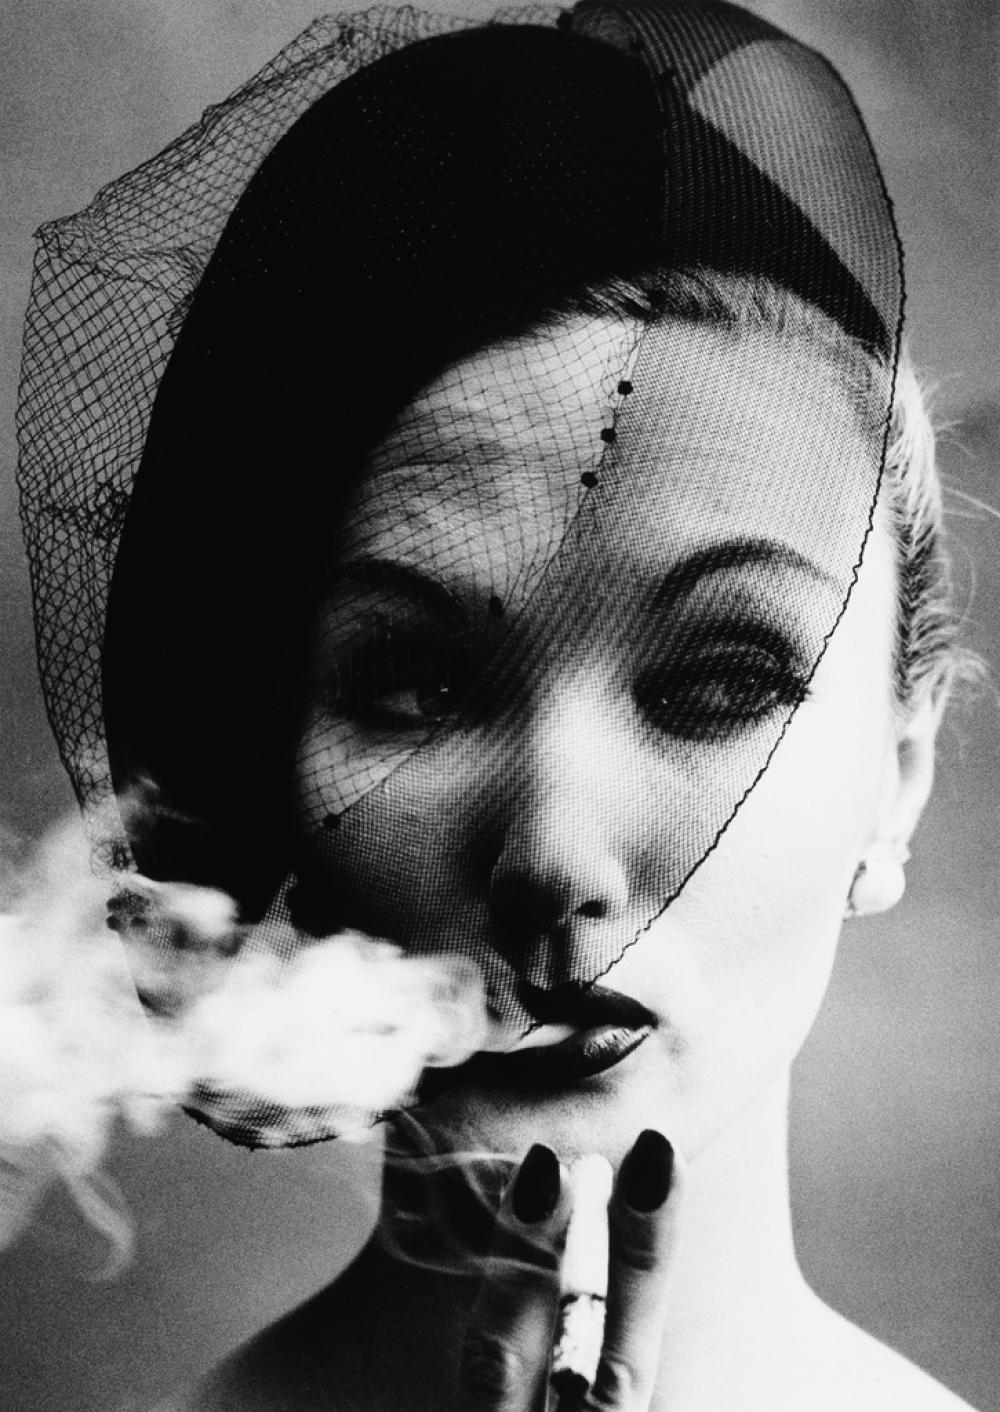 WILLIAM KLEIN (1928- ) Smoke + Veil, Paris (Vogue).